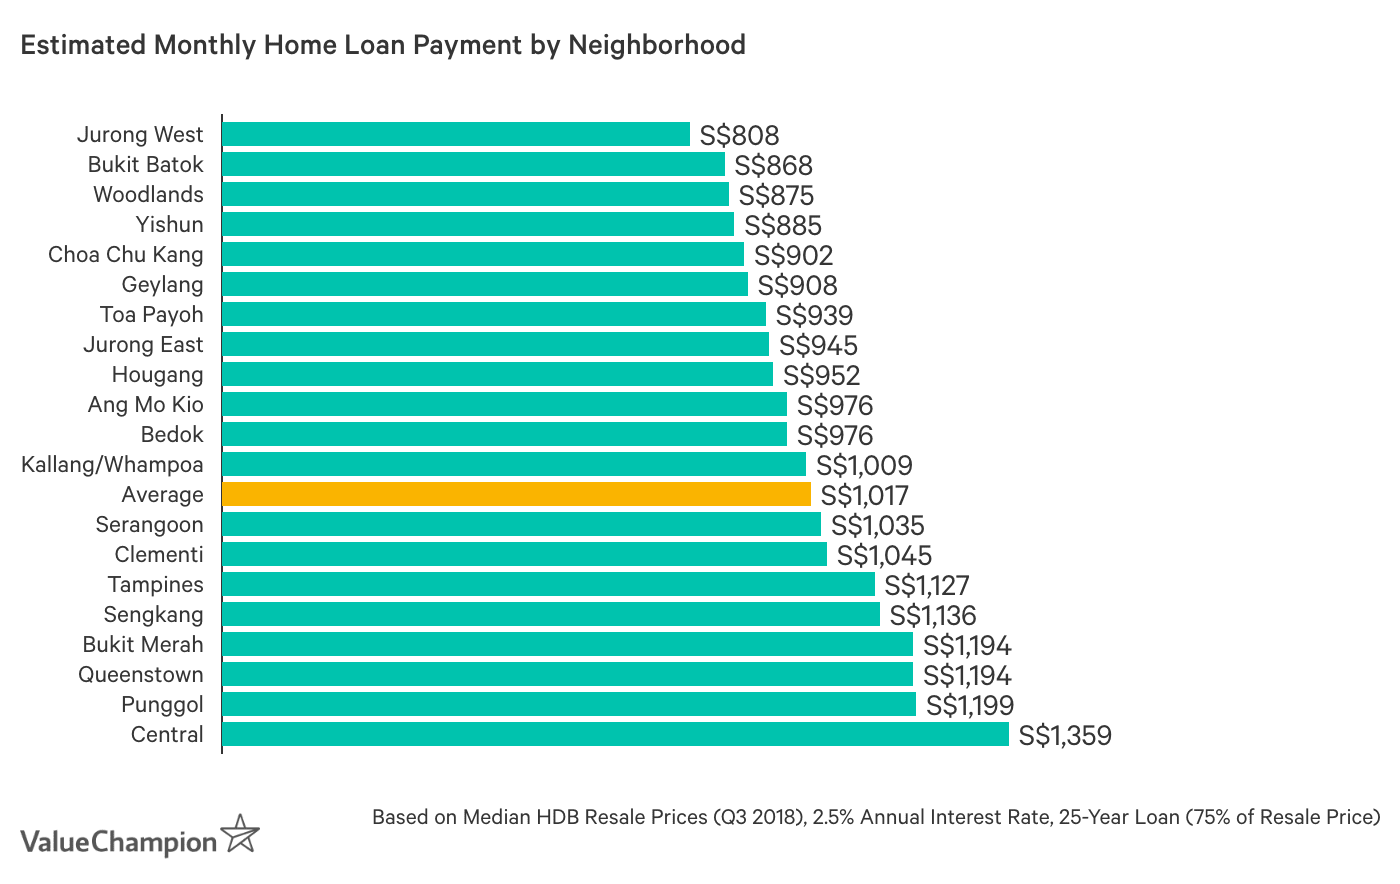 Estimated Monthly Home Loan Payment by Neighborhood